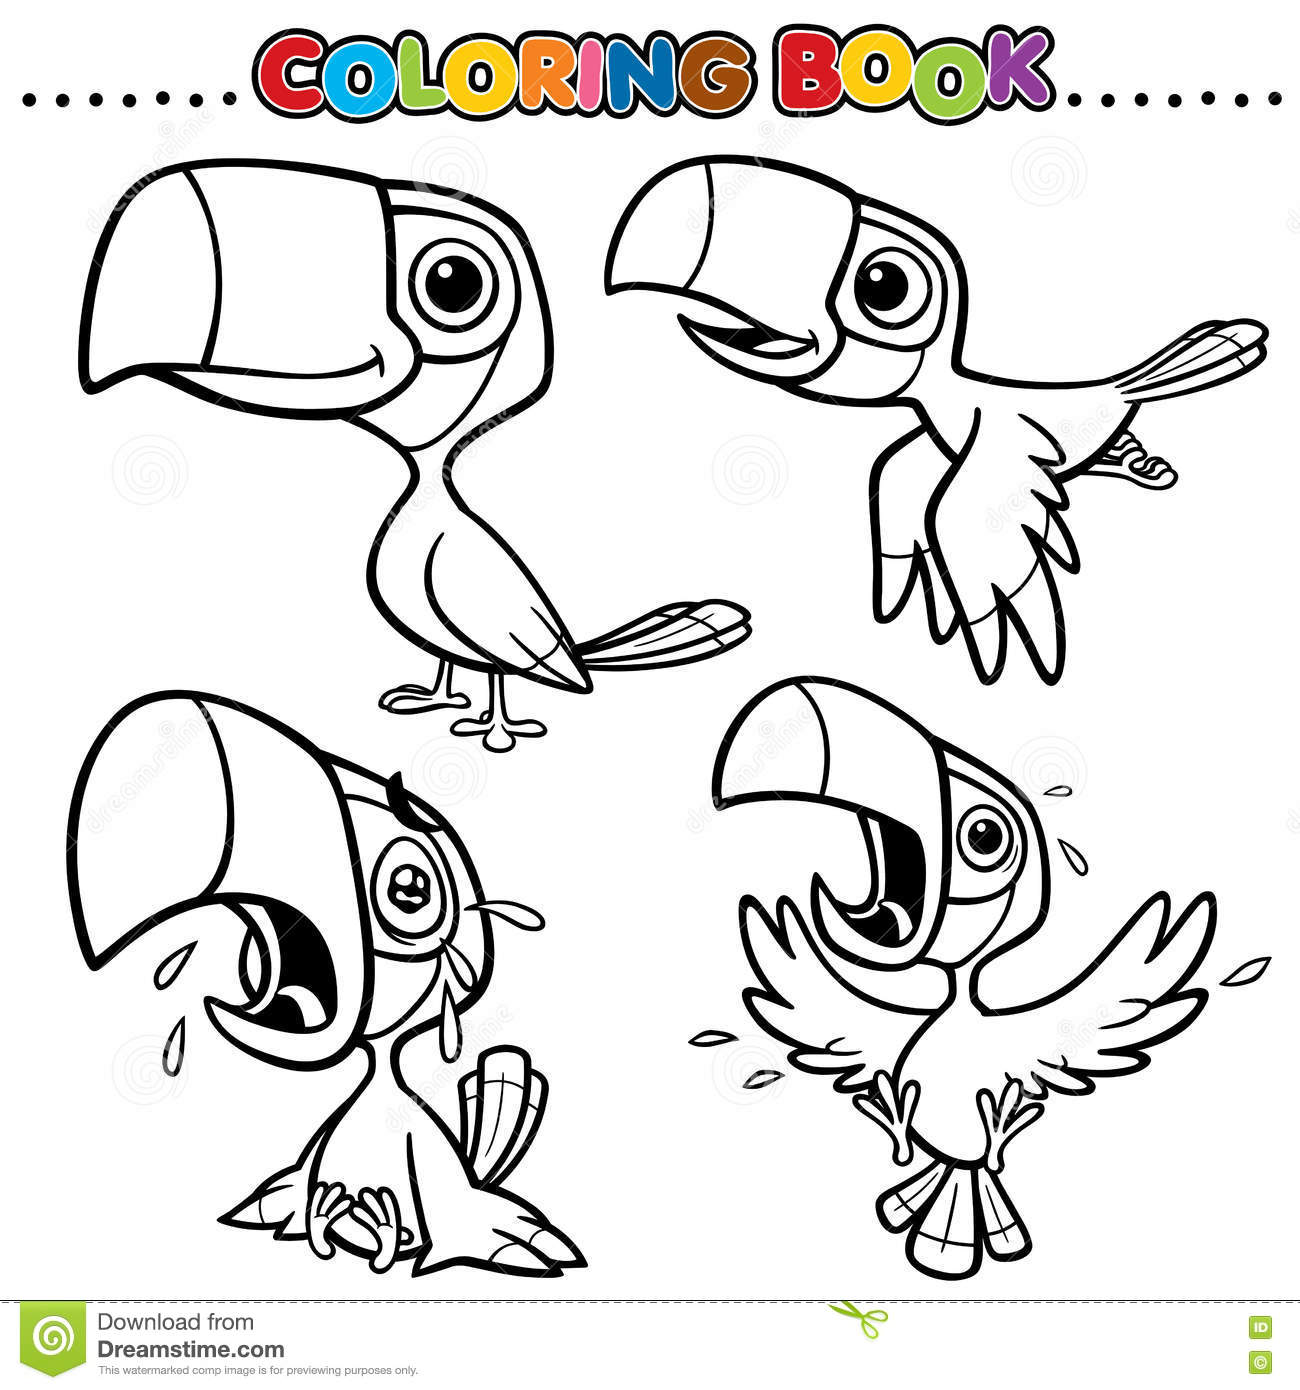 Hornbill Cartoons Illustrations